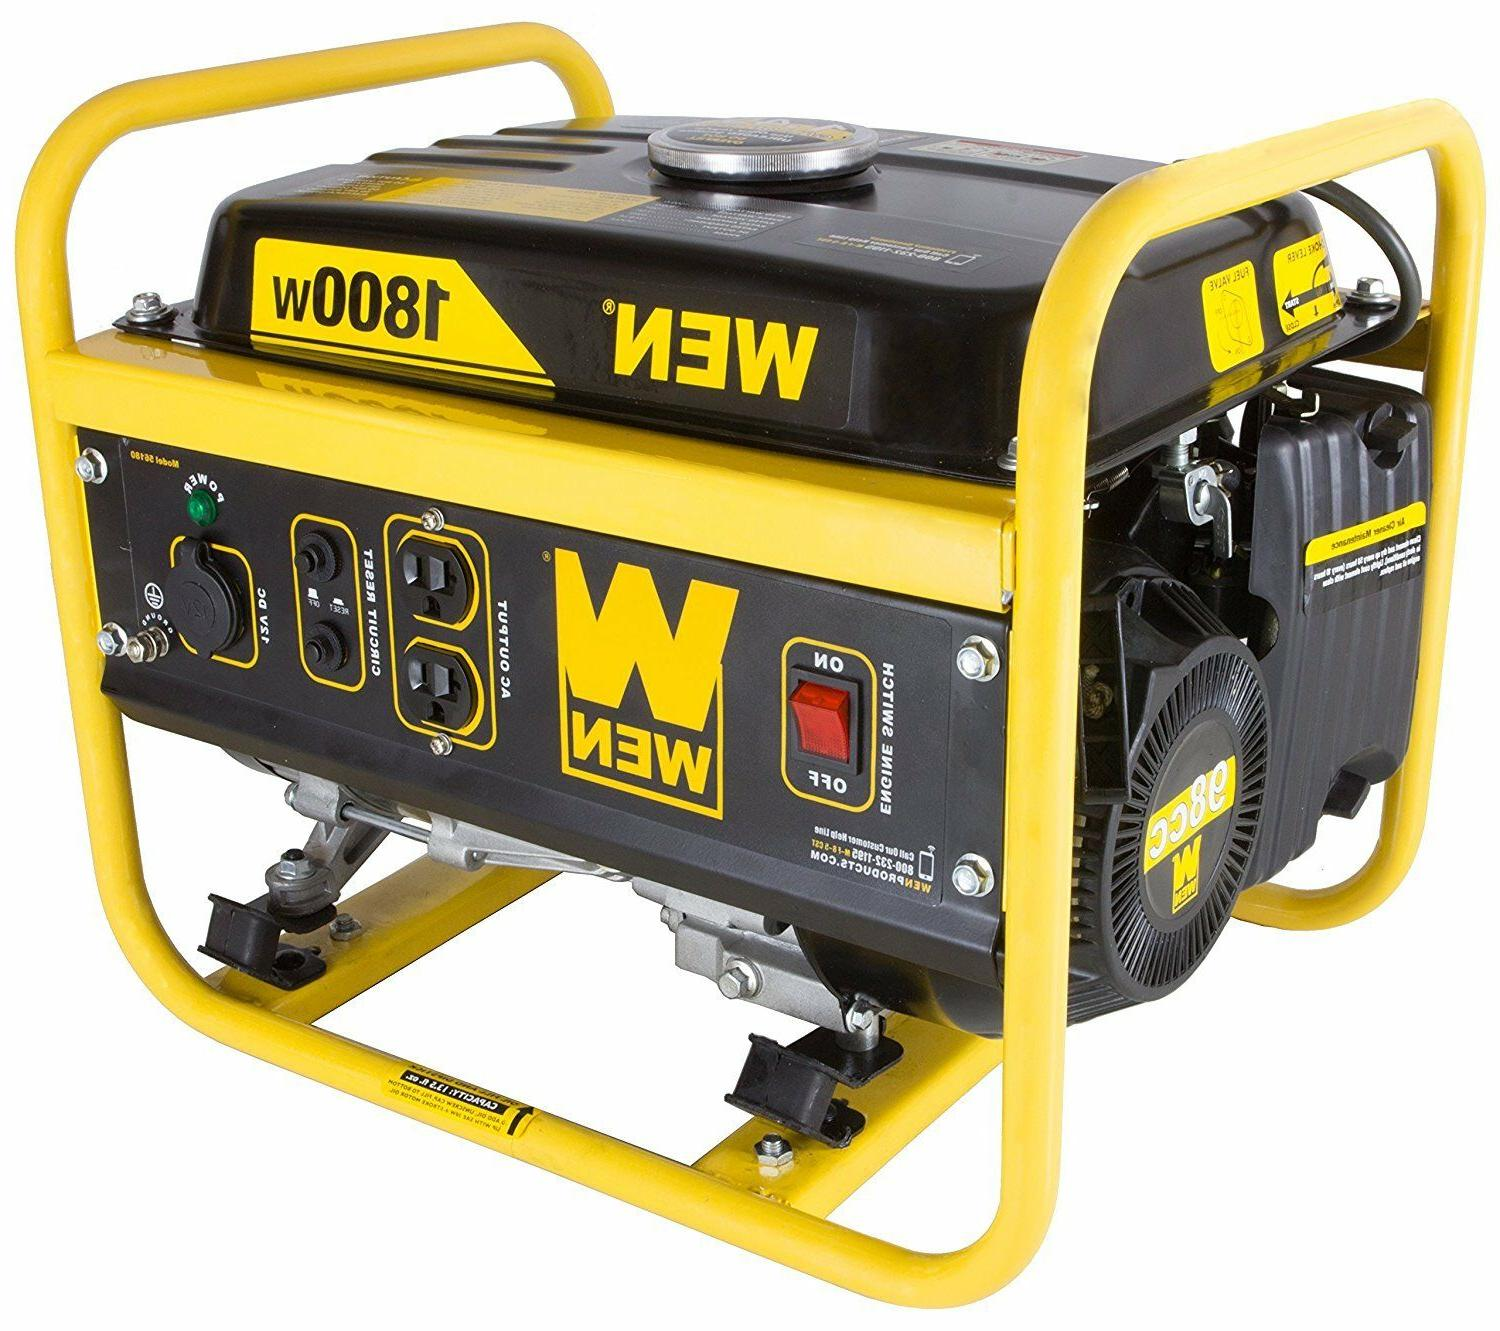 1800 watt generator portable gasoline carb compliant